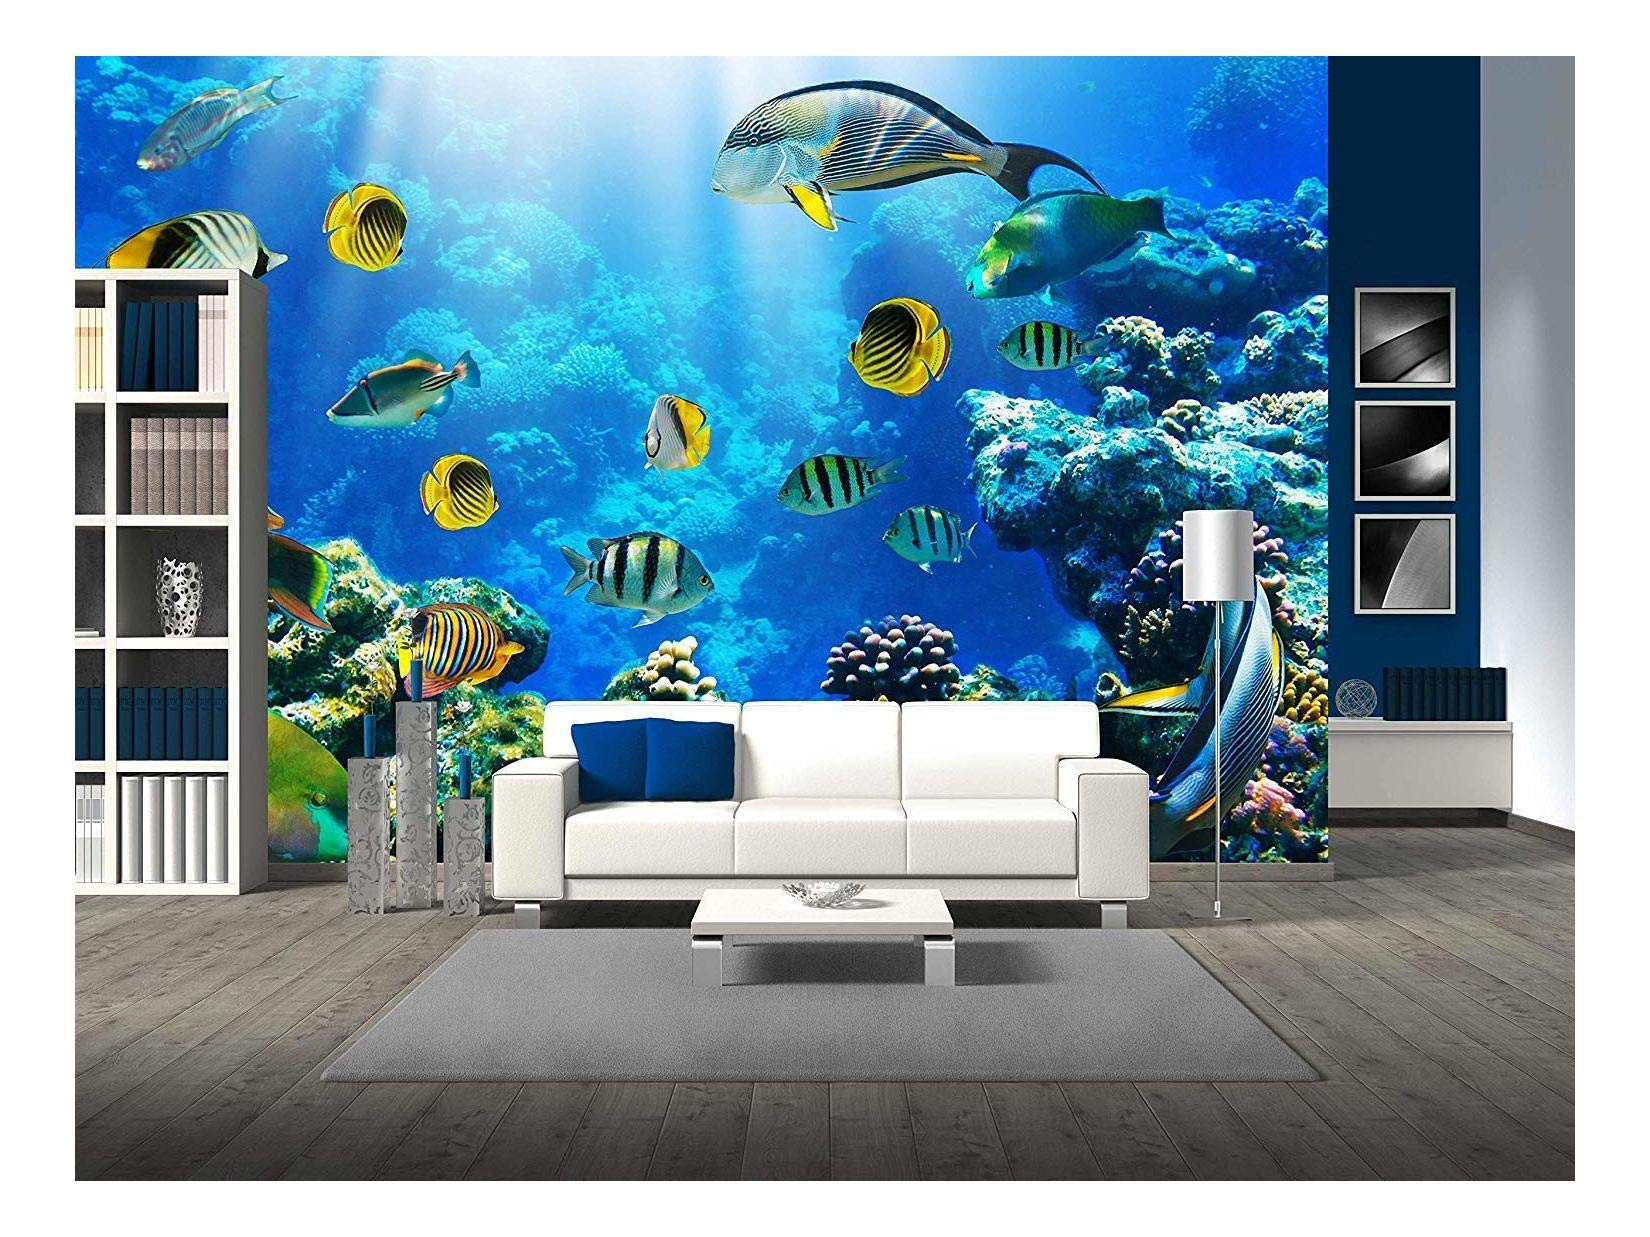 wall26 - Photo of a Tropical Fish on a Coral Reef - Removable Wall Mural | Self-adhesive Large Wallpaper - 100x144 inches by wall26 (Image #1)